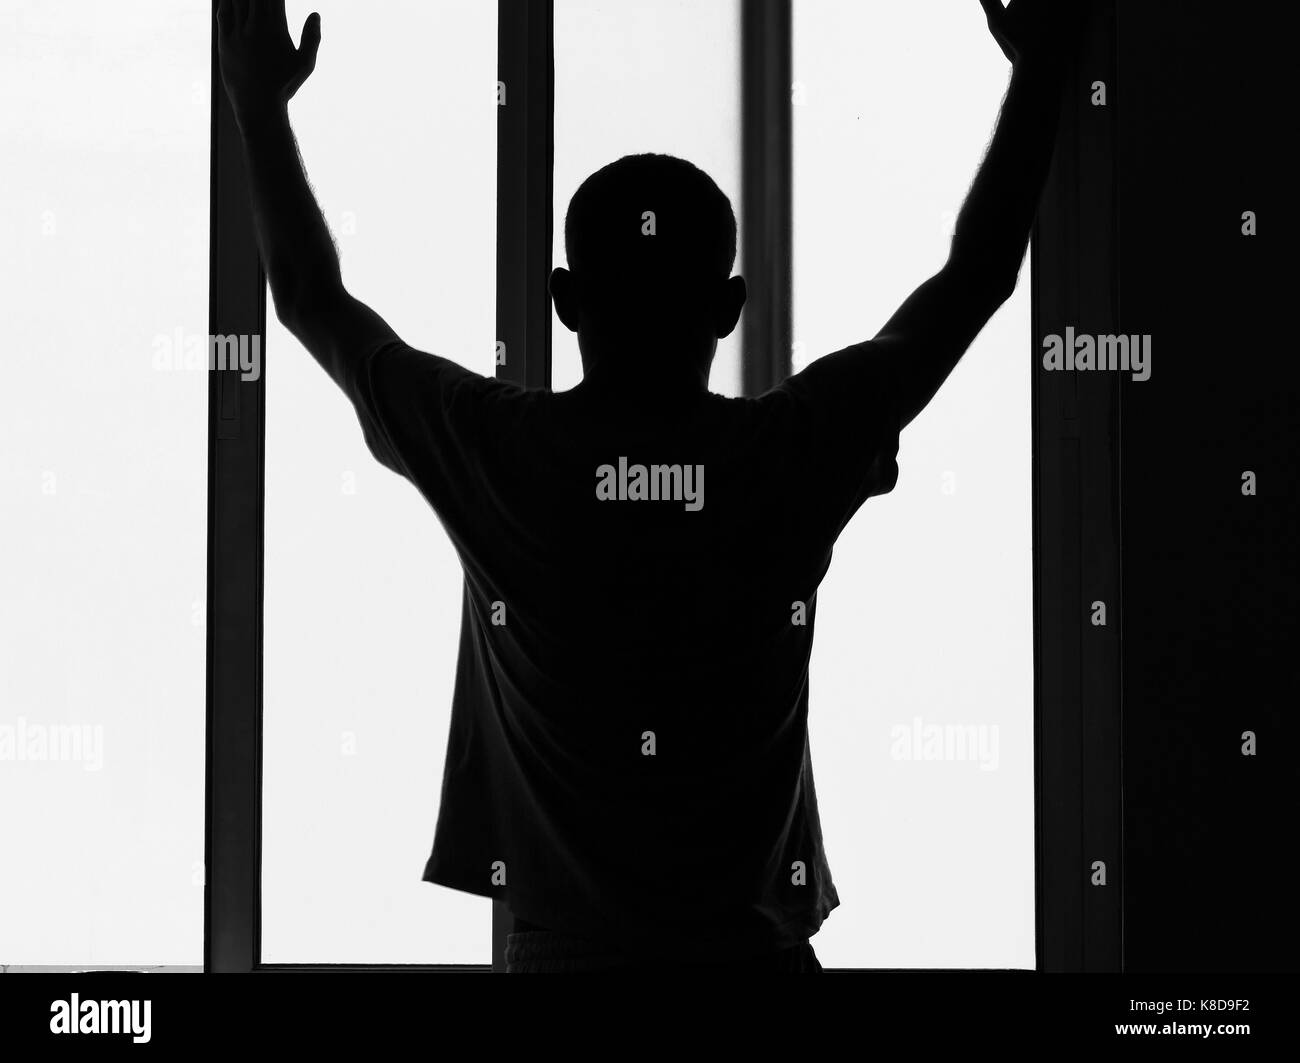 silhouette of a man suffering from depression and mental problems - Stock Image